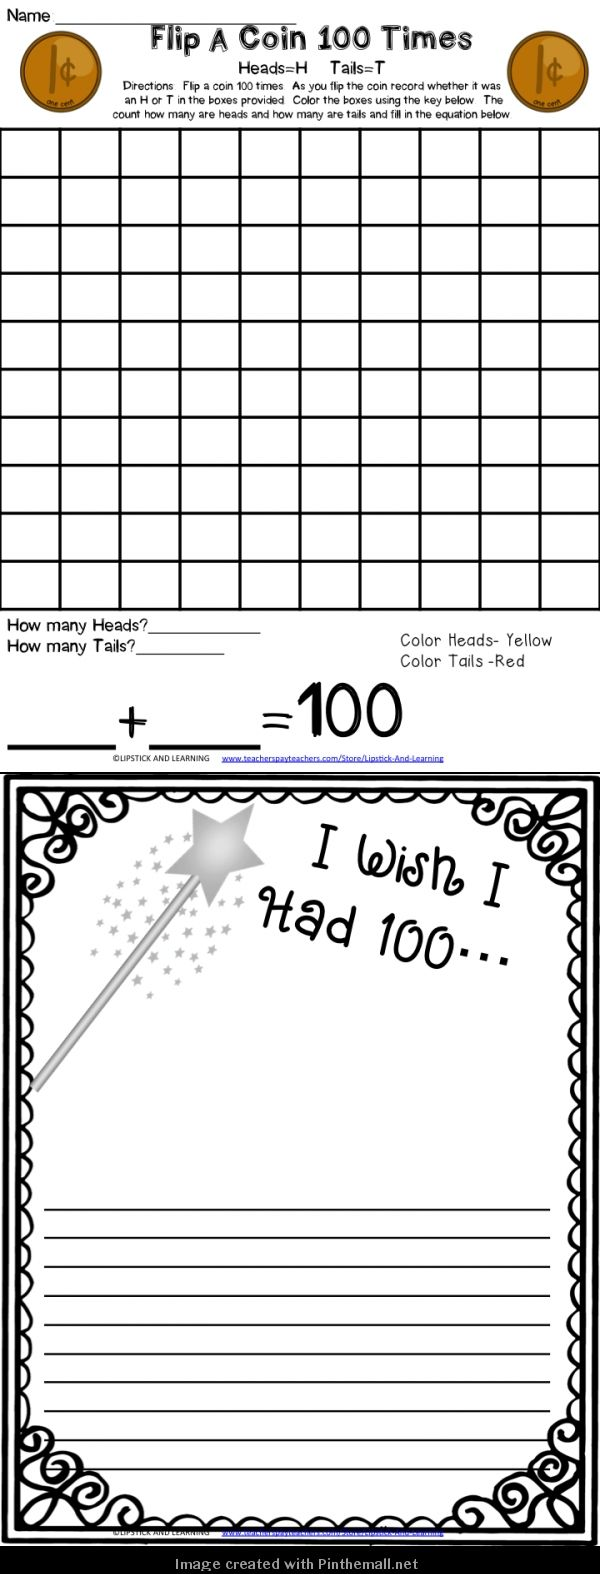 FREEBIE for the 100th Day!  flip a coin 100 times